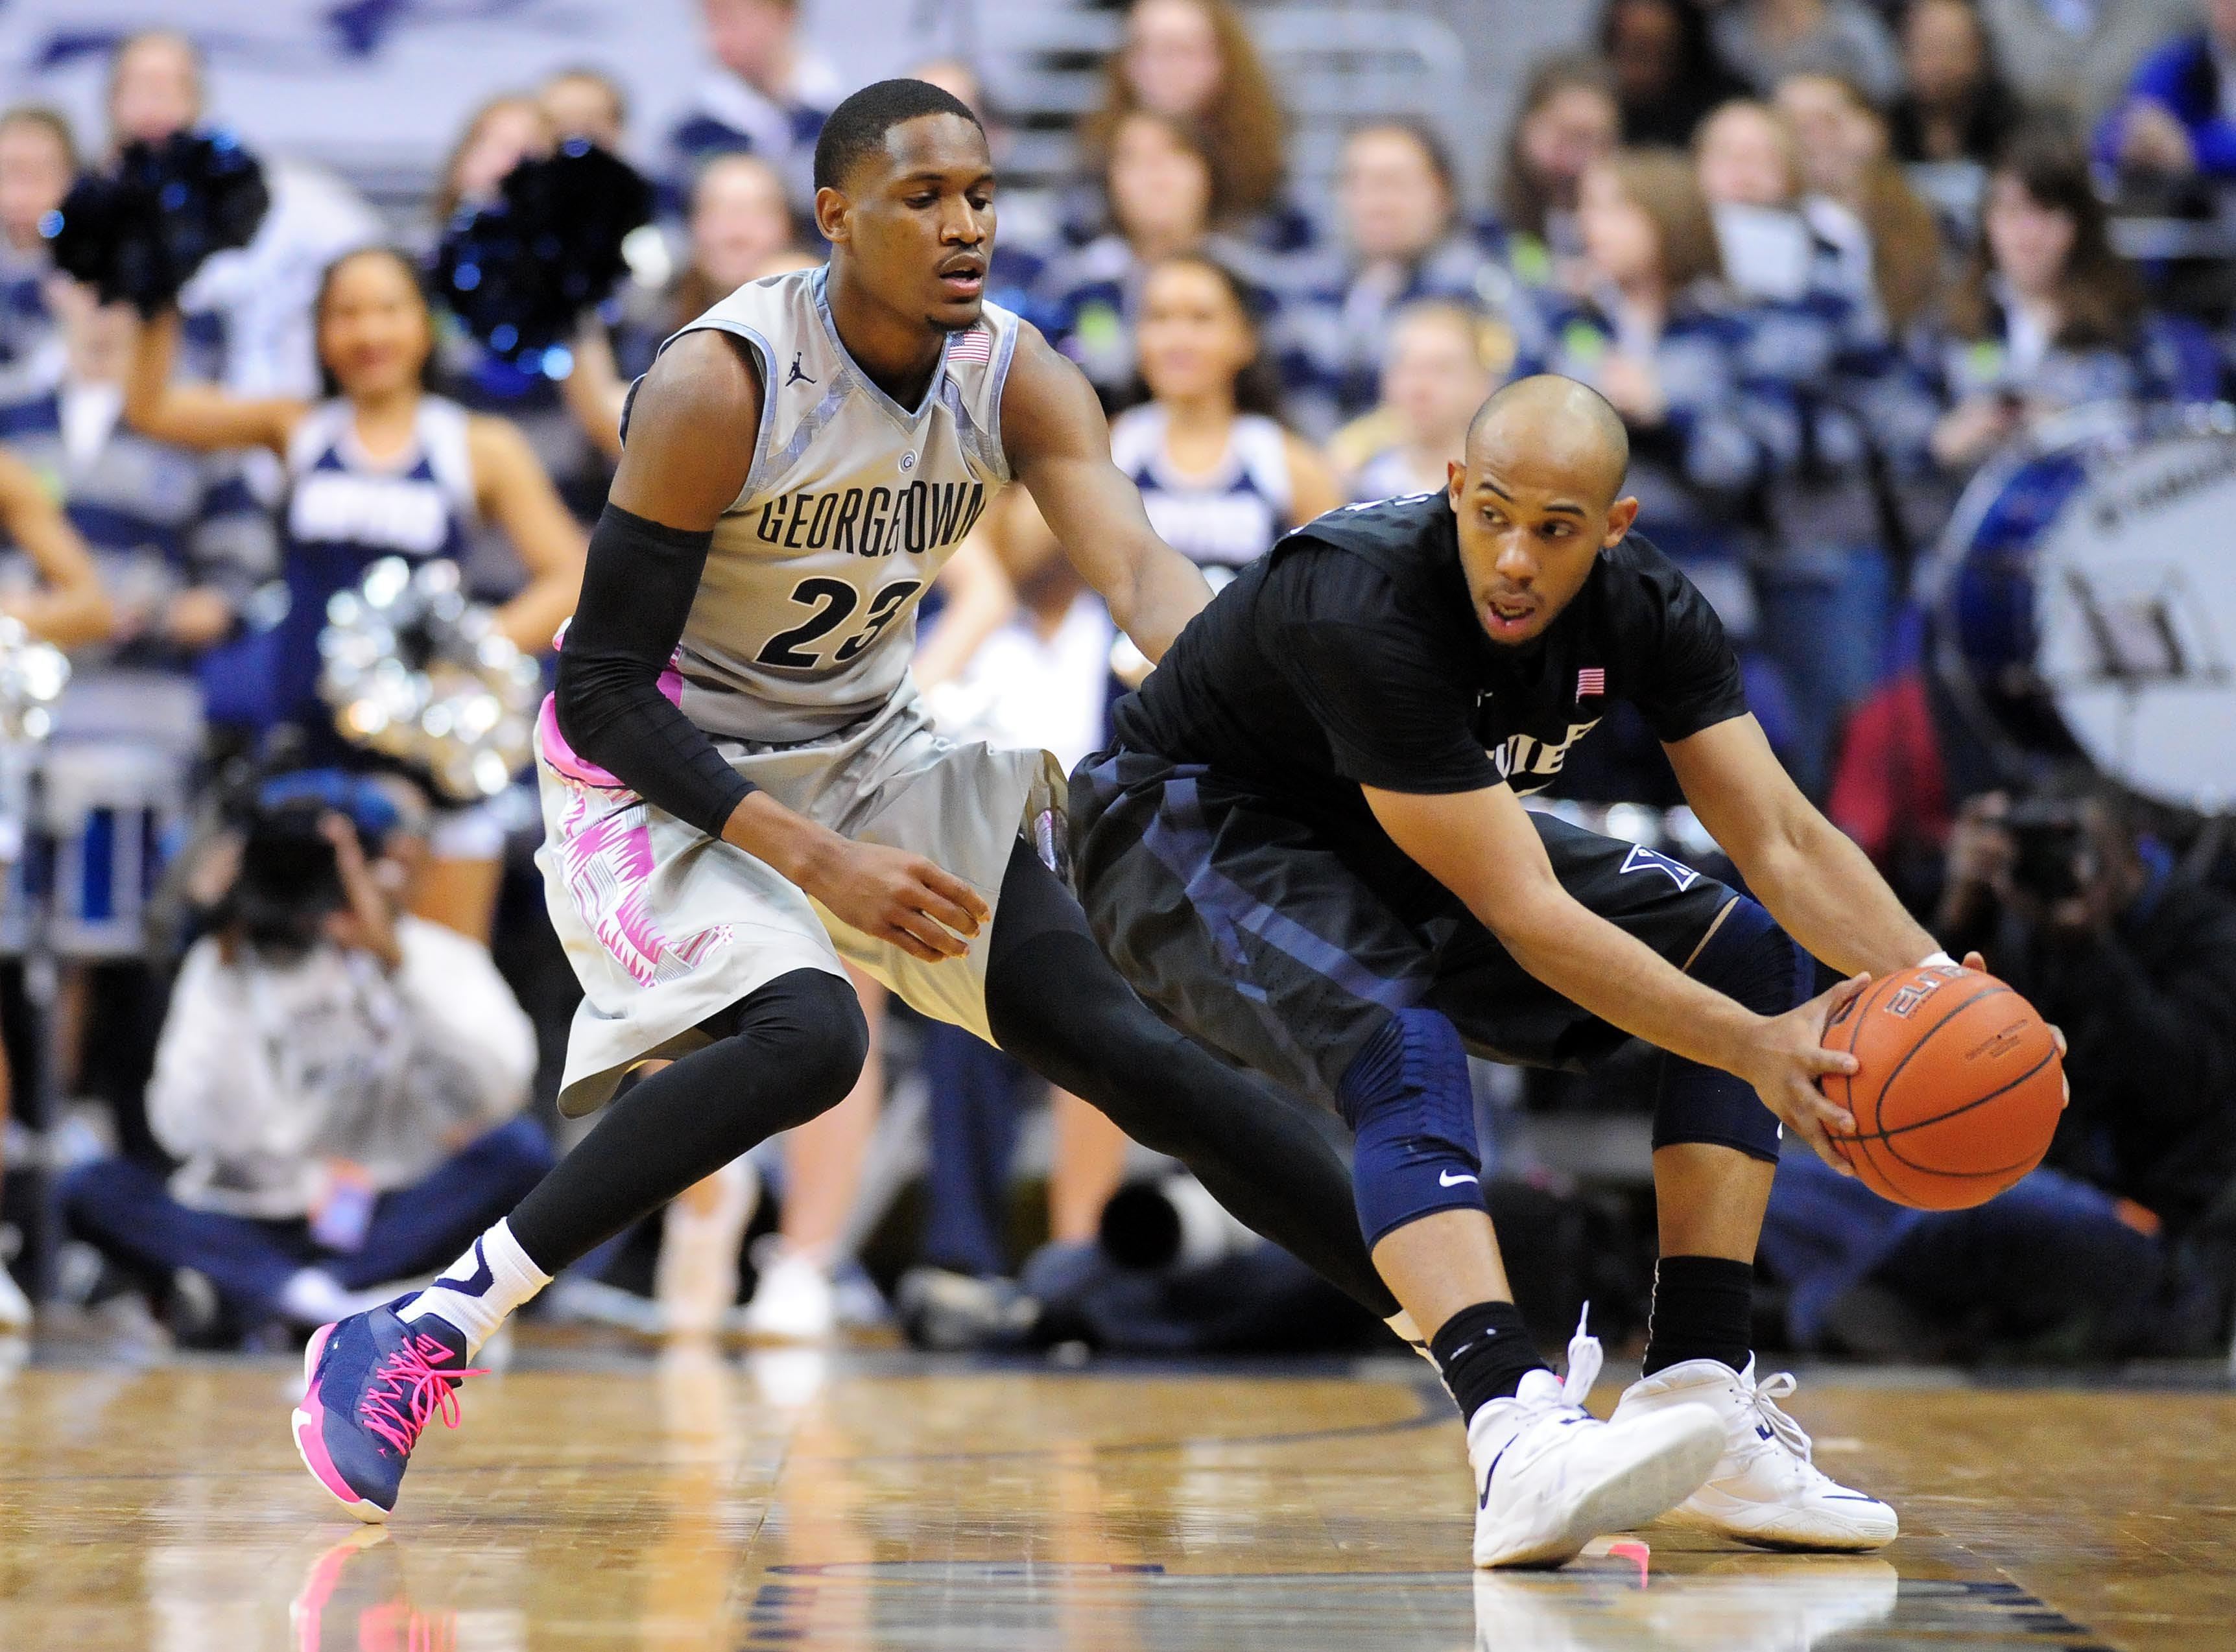 Capital gains: Xavier earns coveted road win at Georgetown